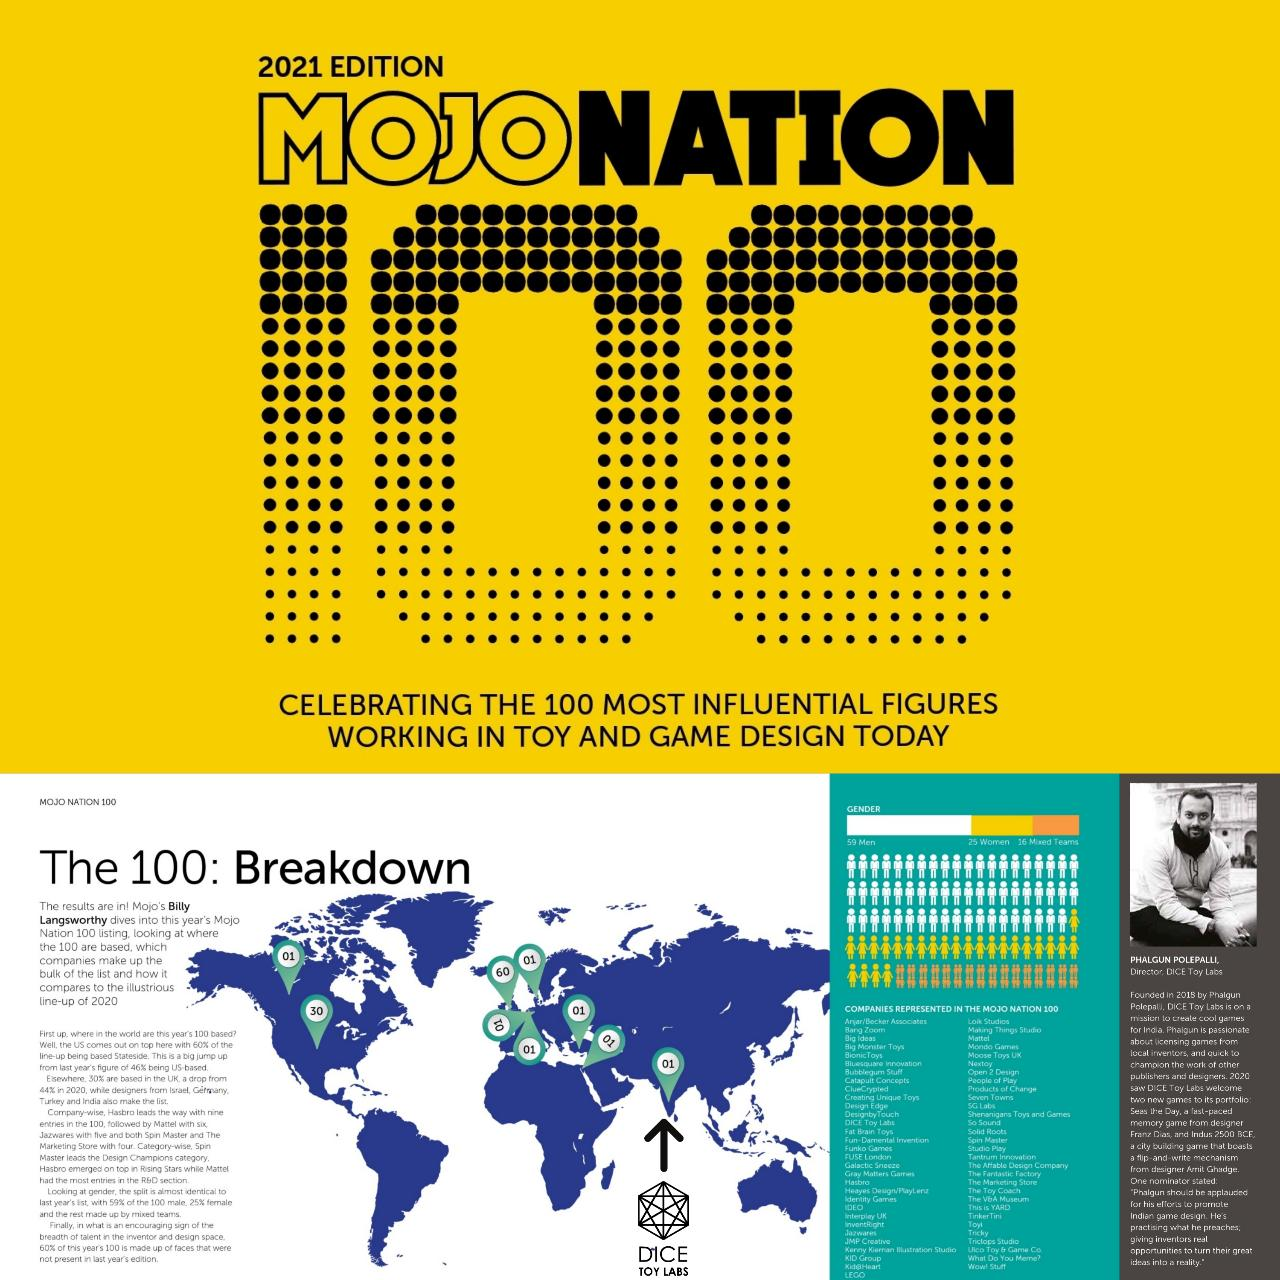 MOJONATION 100 UK DICE TOY LABS INDIAN BOARD GAMES PUBLISHER